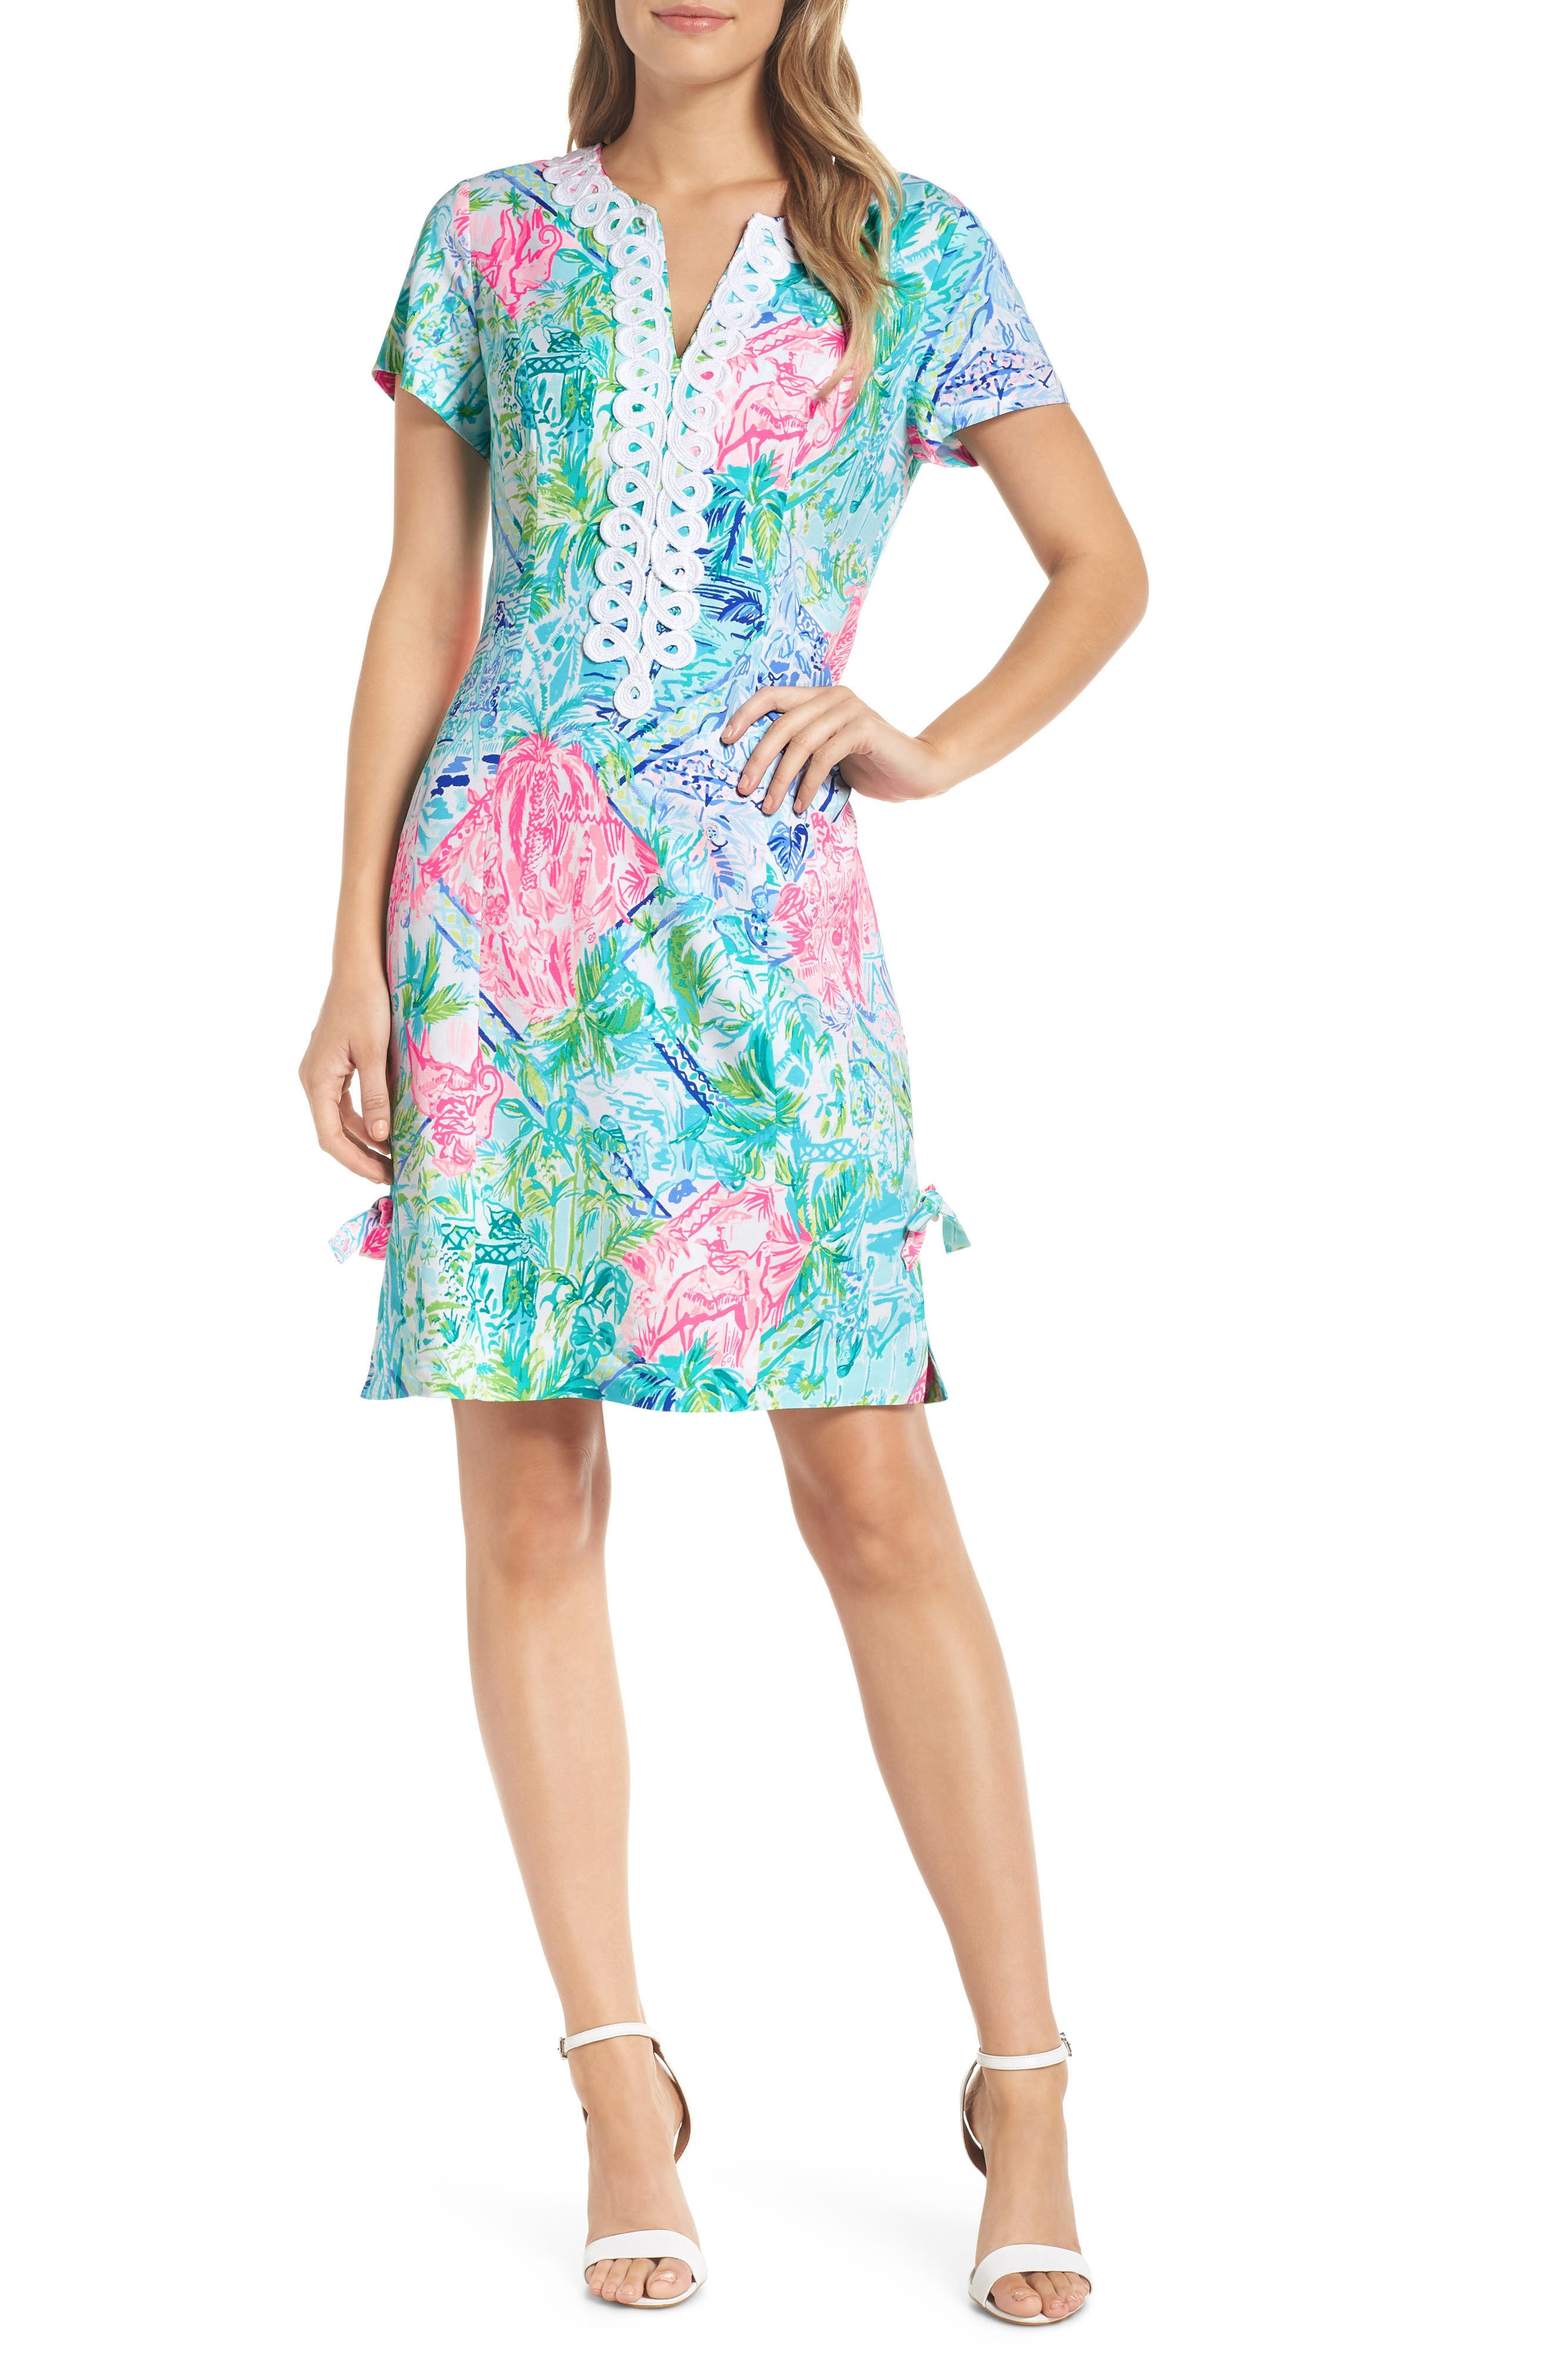 Lilly Pulitzer Casidy Floral Print Dress, Blue